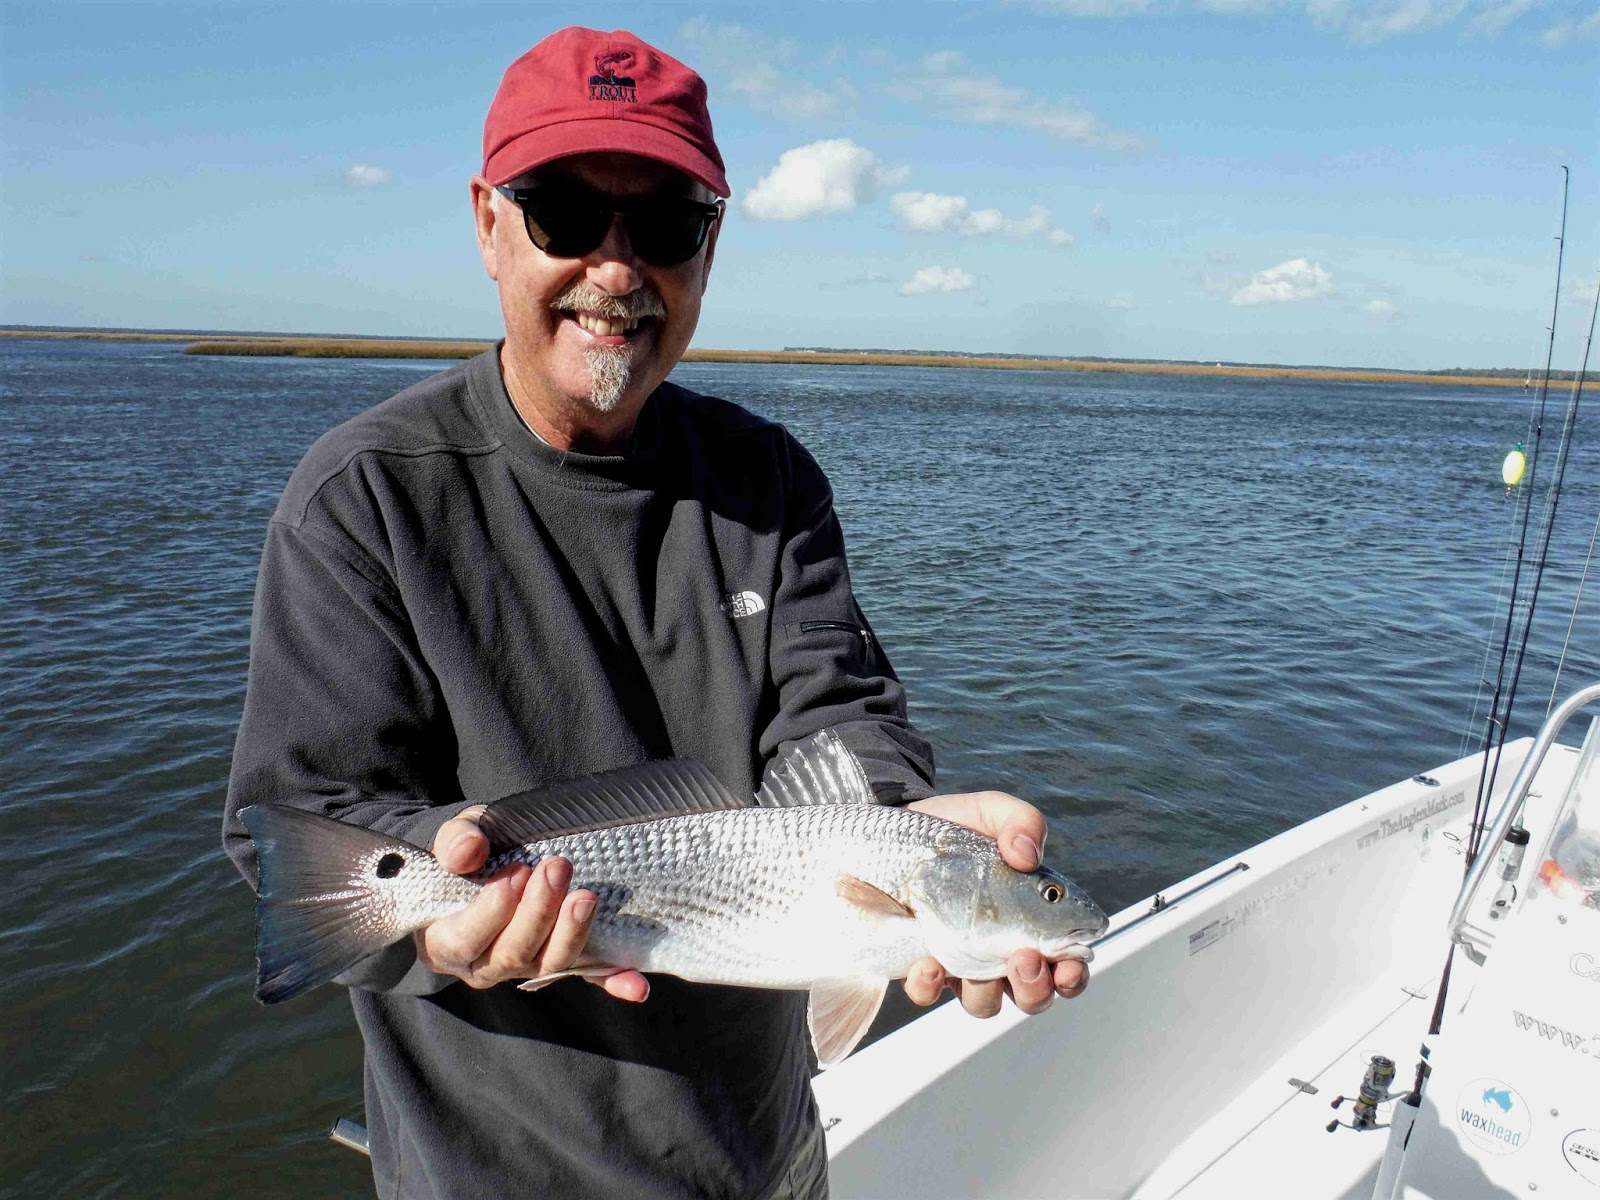 Amelia Island Fishing Reports Lower Tide Makes For Better